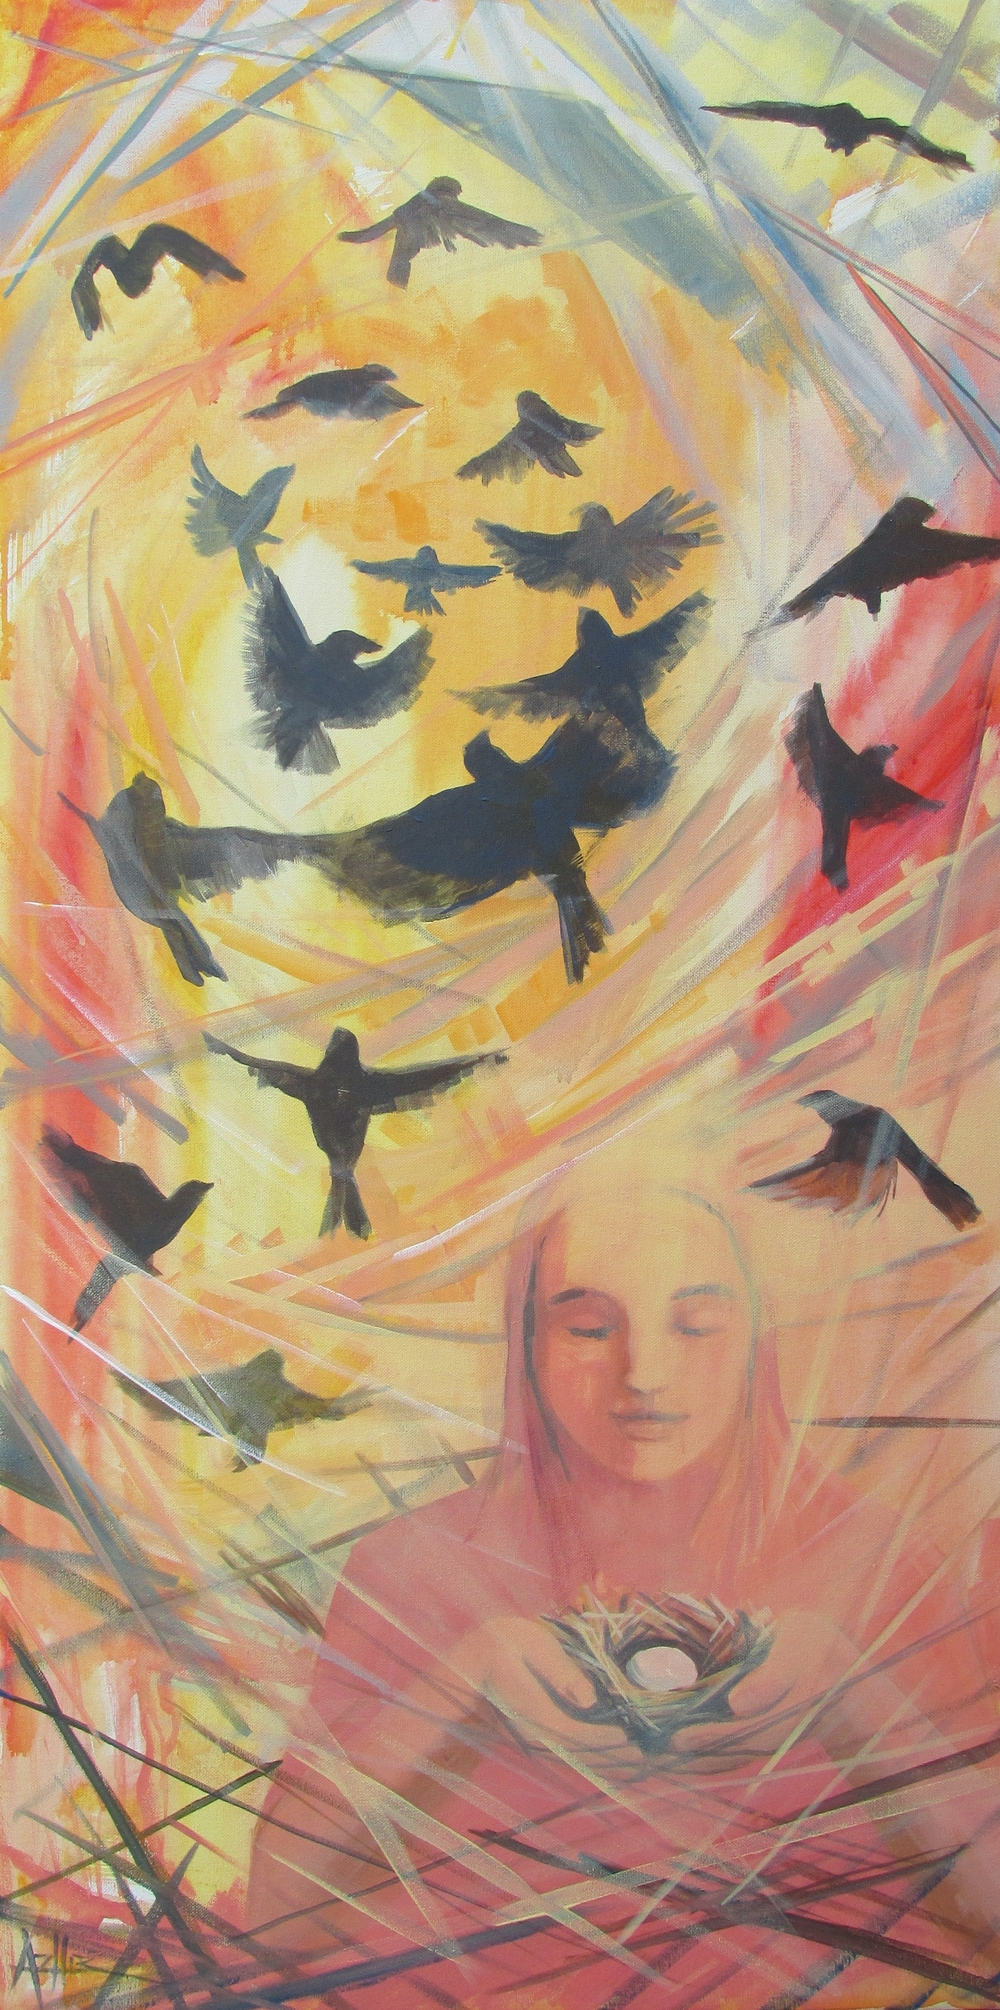 "SOLD, The Birds of Syria, Copyright 2015 Hirschten, Acrylic on Canvas 18"" x 36"""